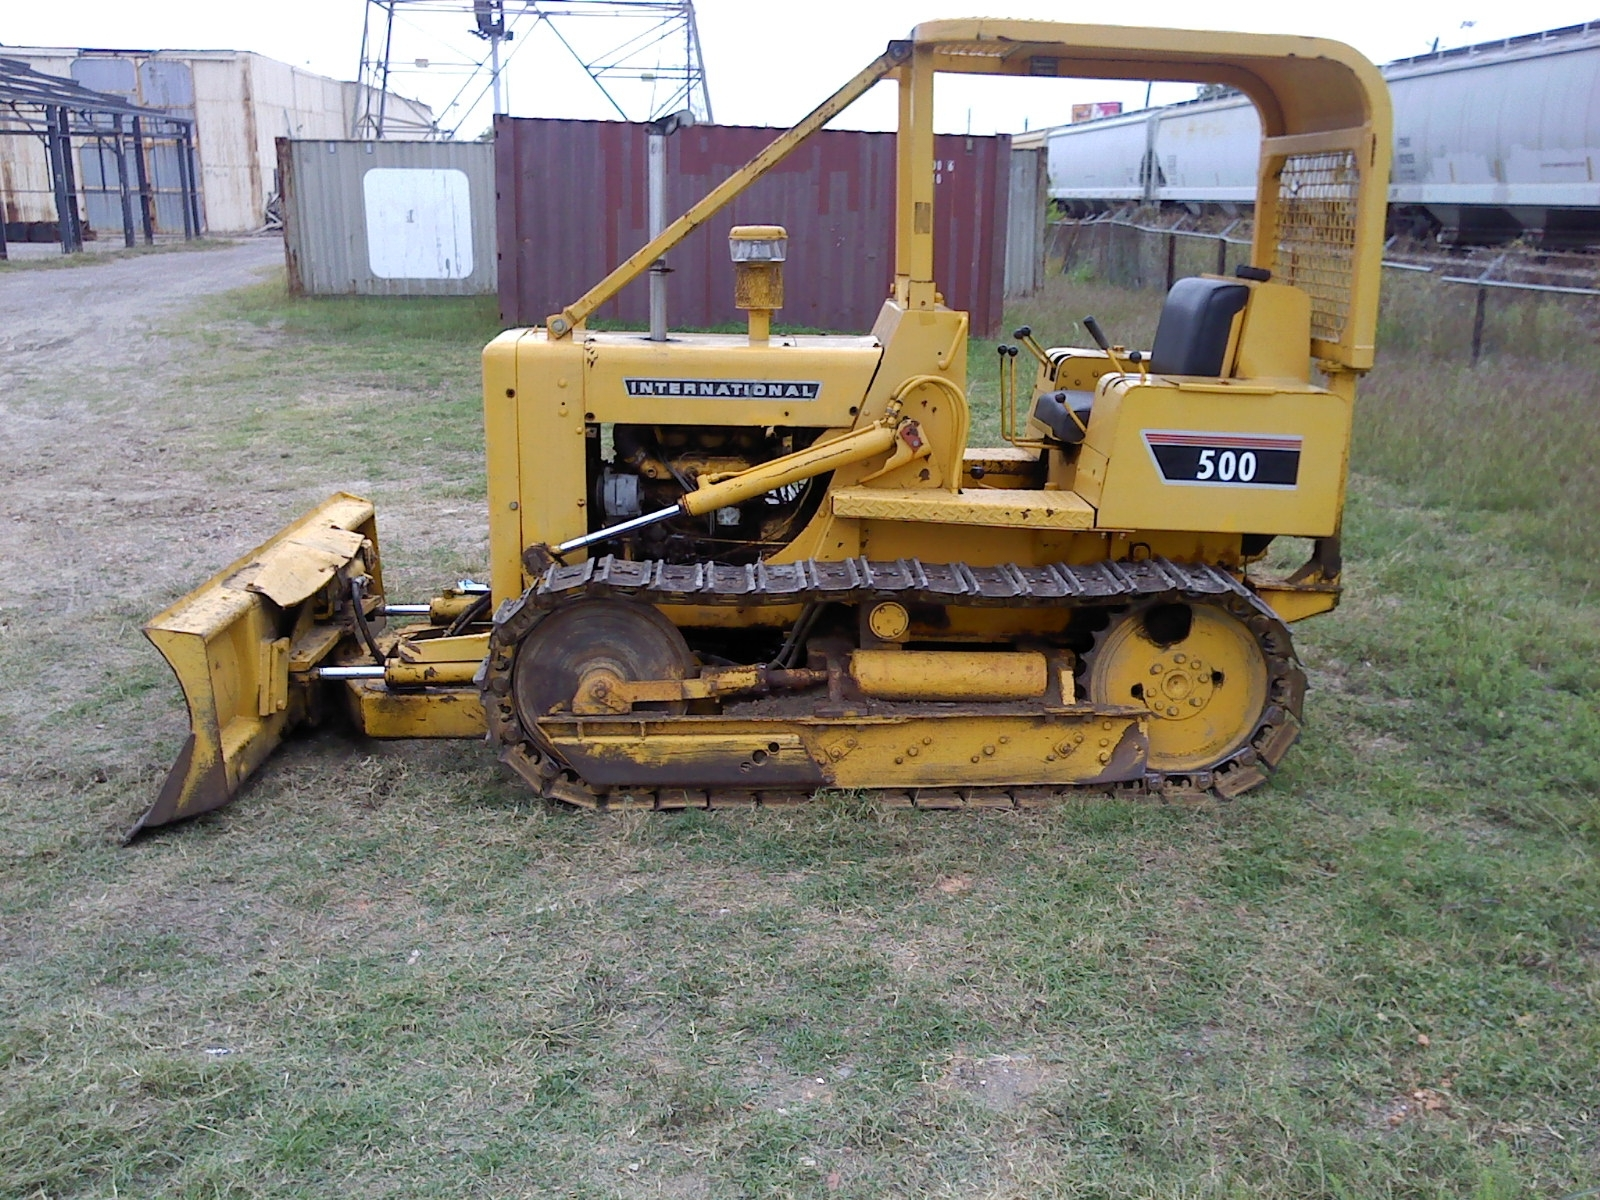 Ih 500e Dozer Purchased 11 2017